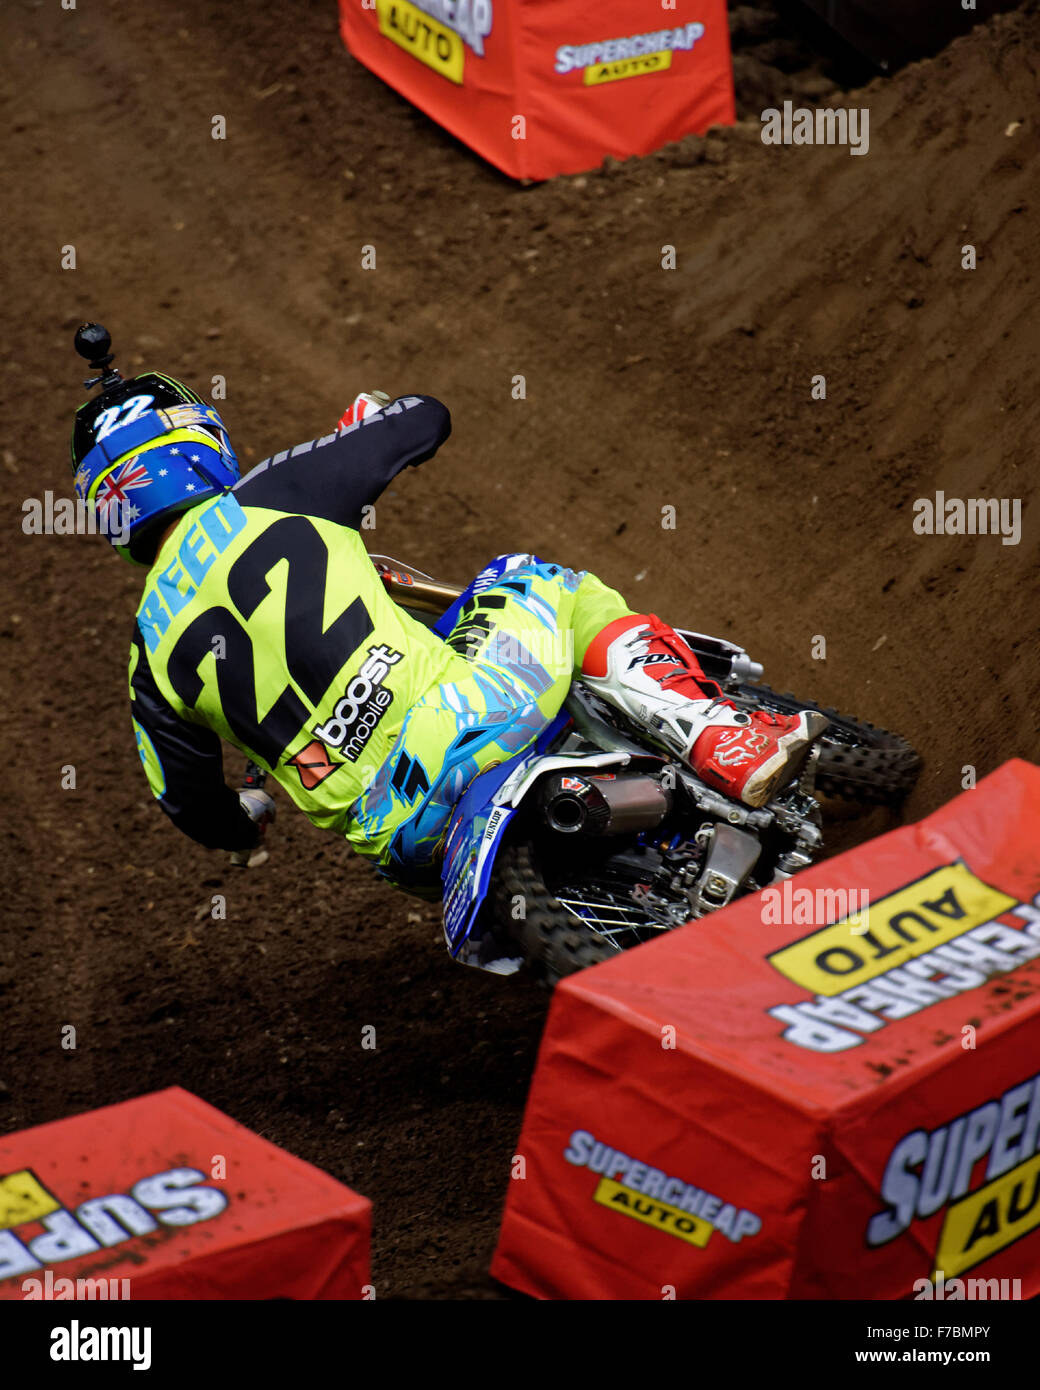 Sydney Olympic Park Australia 28th Nov 2015 The AUS X Open Motocross Day One Chad Reed Rider Of 22 Yamaha Digs Into A Berm In SX1